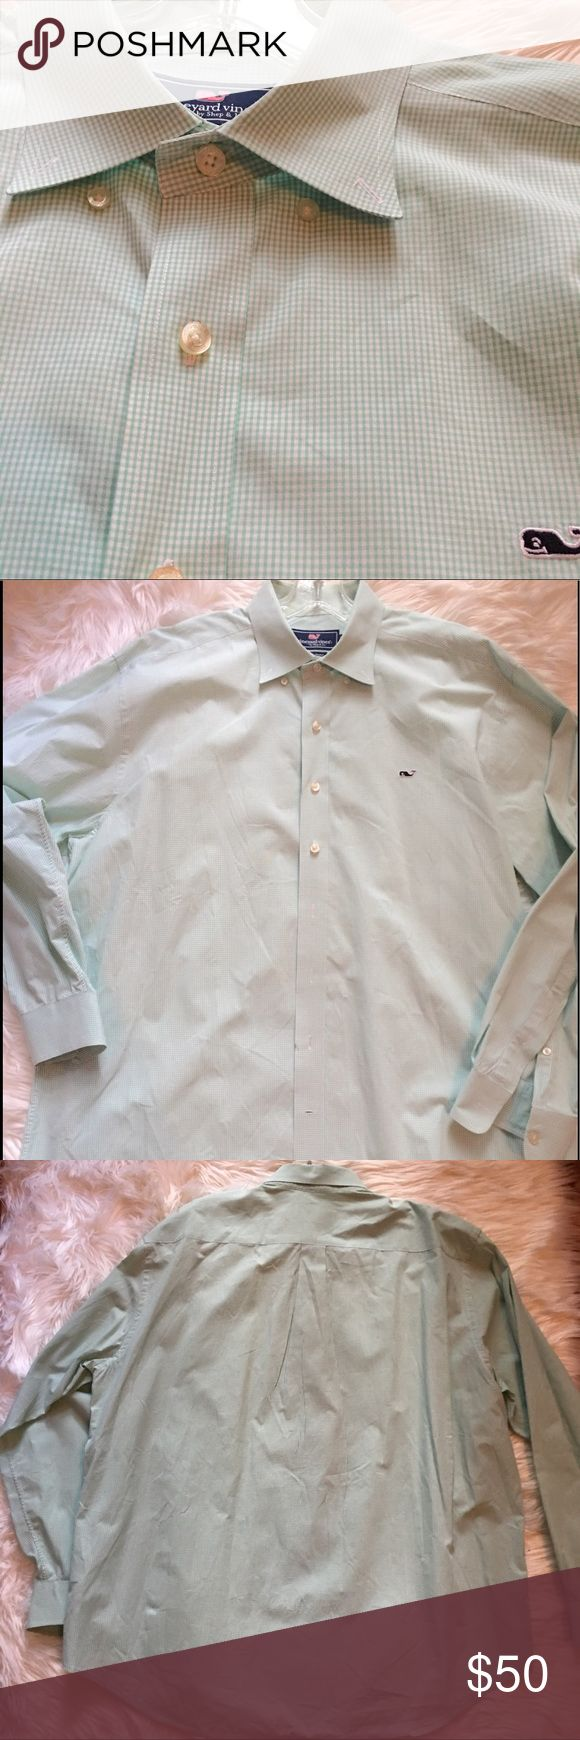 Vineyard Vines Men's Gingham Oxford Whale Shirt XL Vineyard Vines Men's Green gingham Whale shirt sz XL. This classic Style button shirt is perfect for any guys wardrobe.  Signature Whale Logo on front. 100% Cotton. Lightweight. Sku#00500170070070 Vineyard Vines Shirts Casual Button Down Shirts